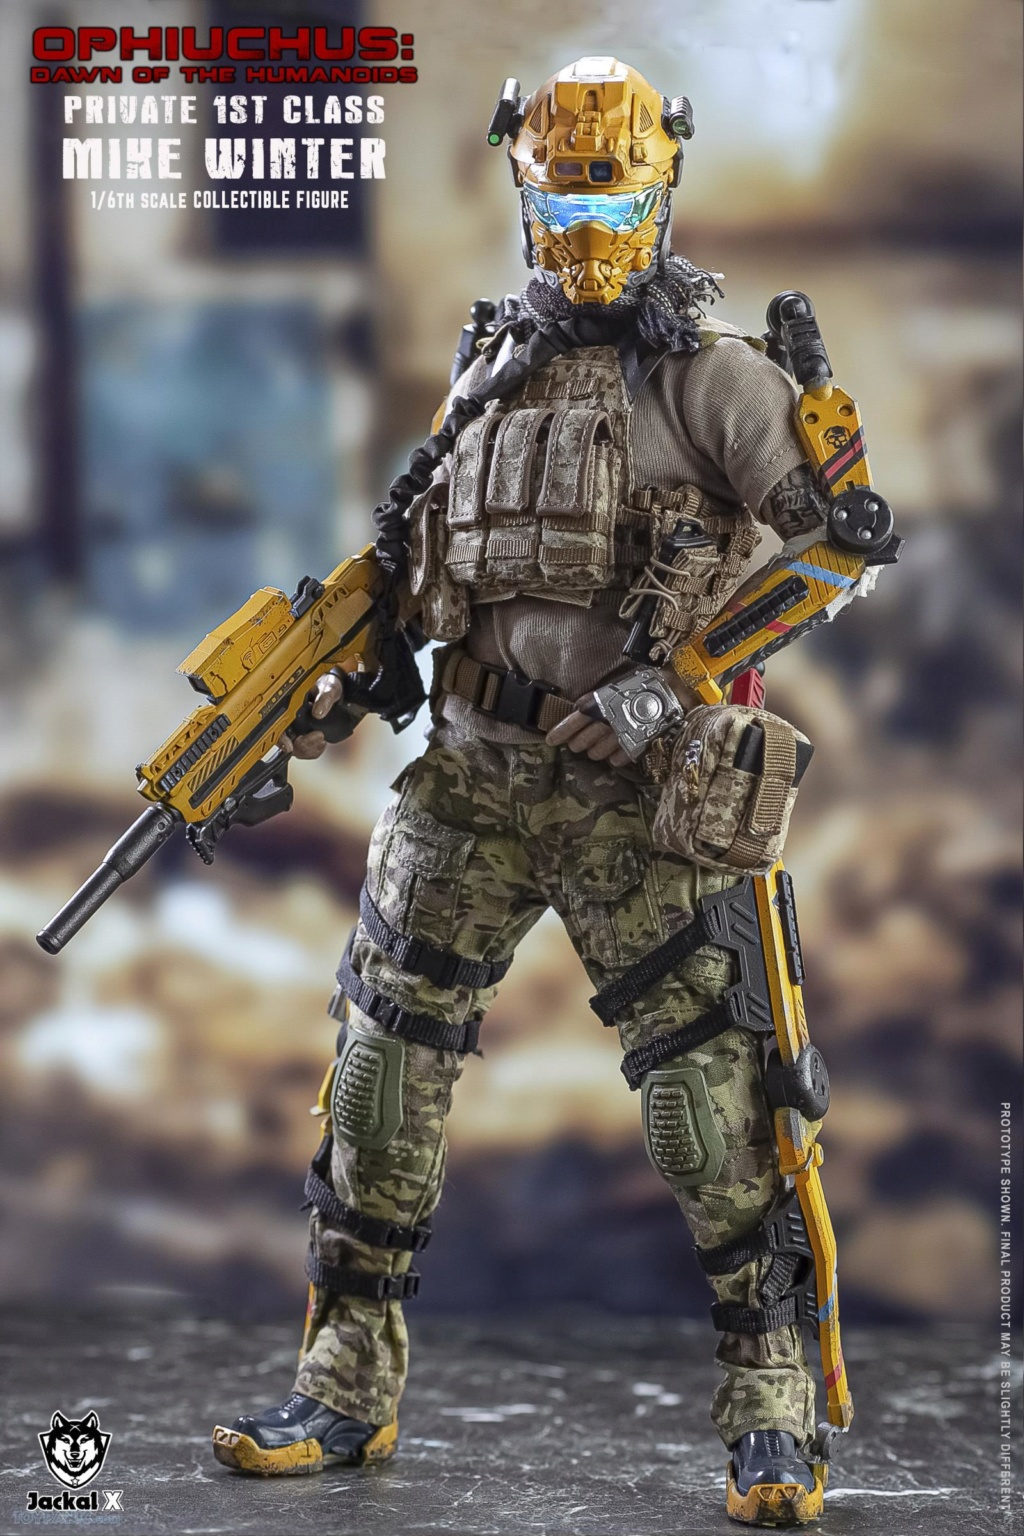 DawnOfHumanoid - NEW PRODUCT: JackalX: 1/6 Ophiuchus: Dawn of Humanoid: Private 1st Class Mike Winter Collectible Figure (2 Versions) 43202016